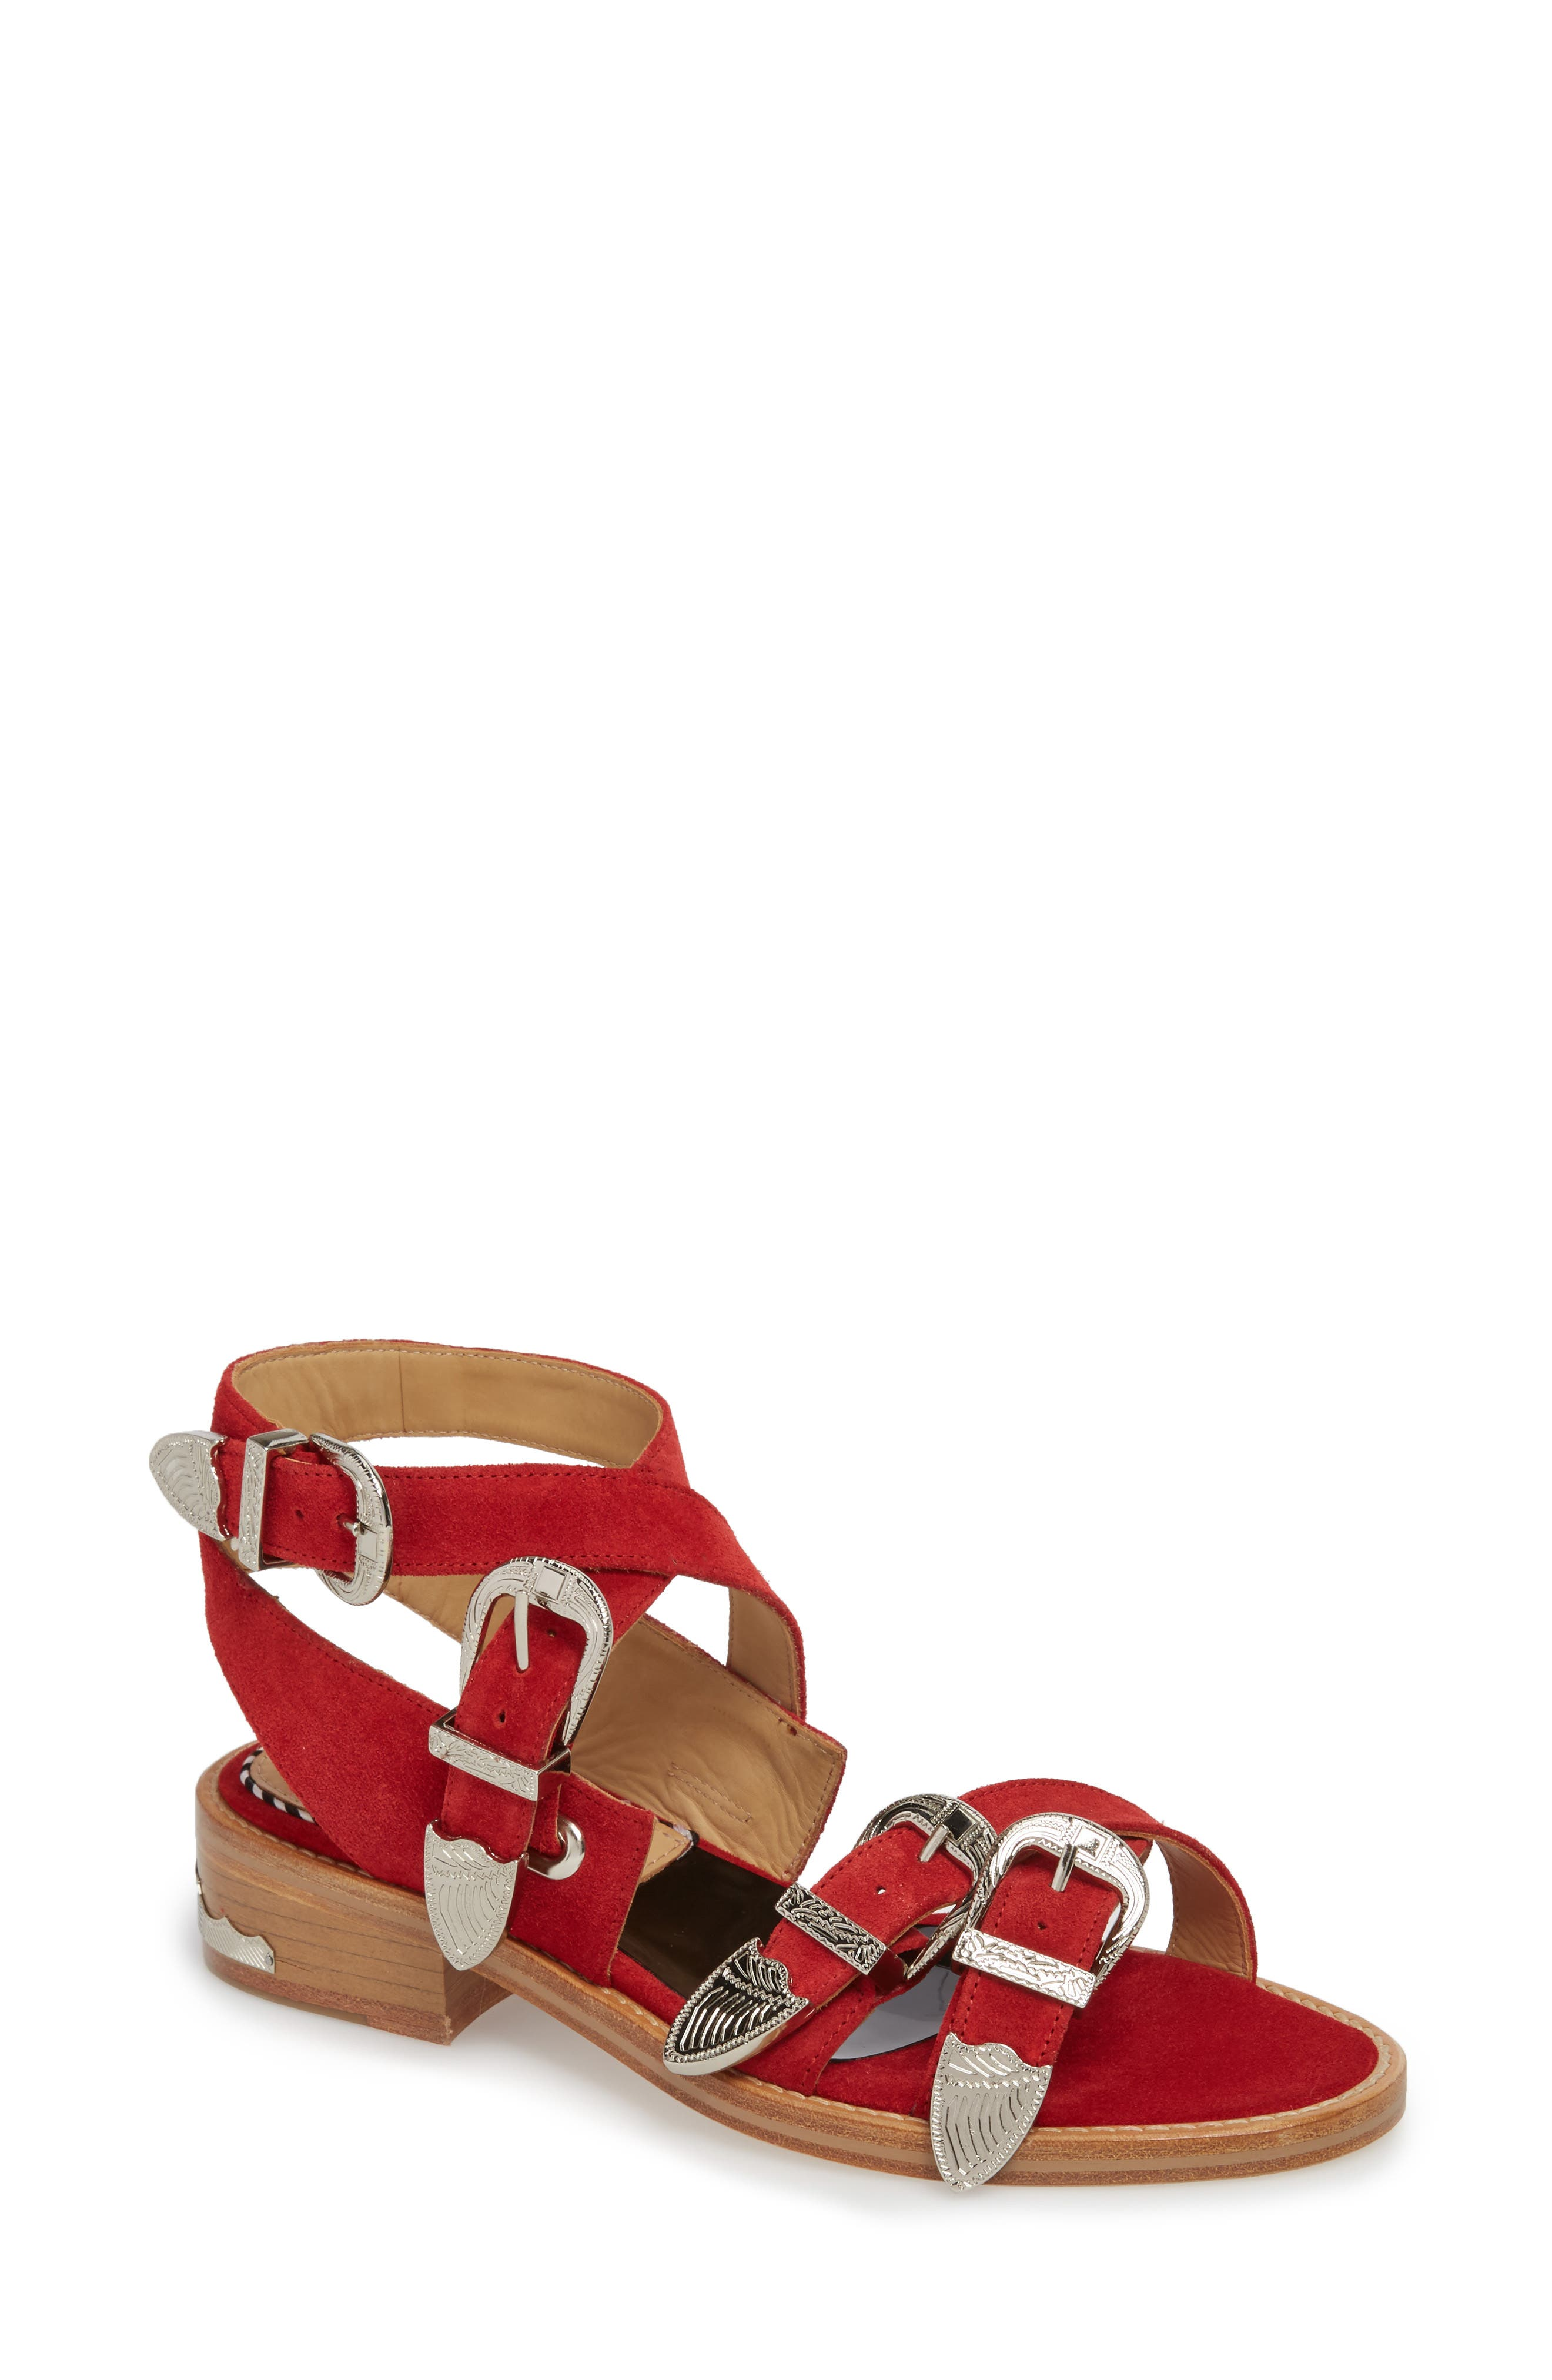 Western Suede Strappy Sandal,                         Main,                         color, Red Suede